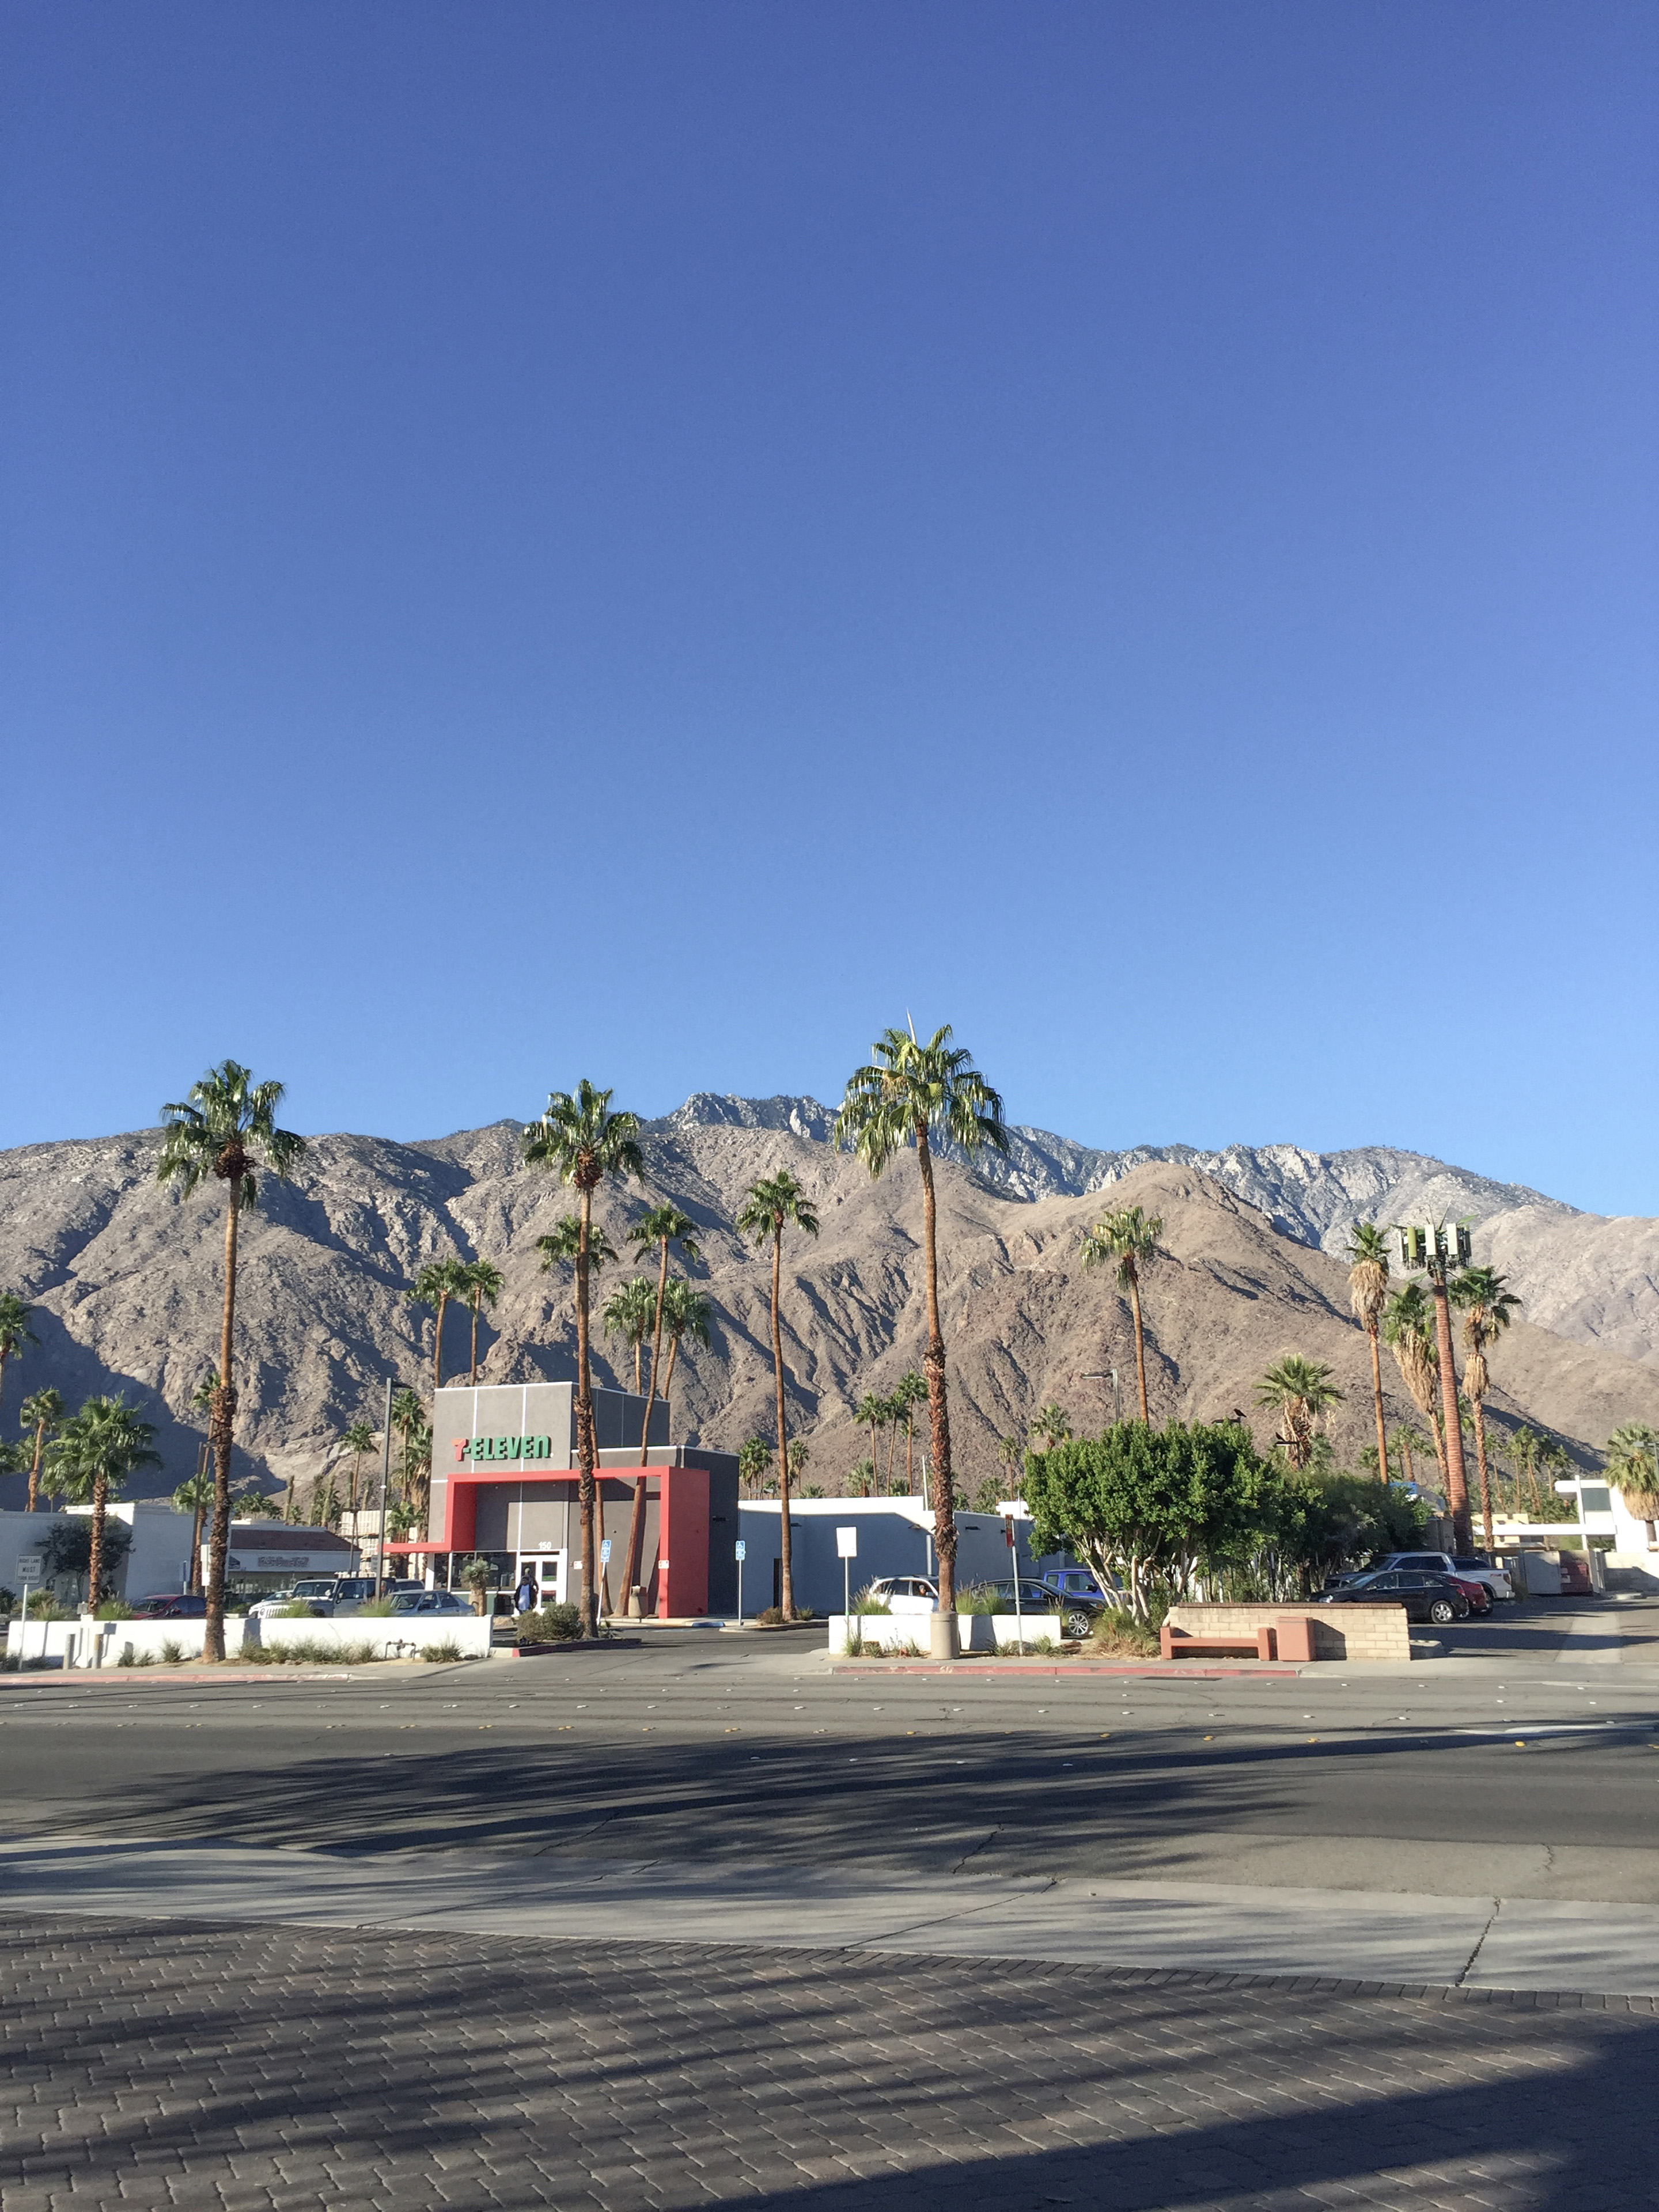 1 #CaliforniaDreamBig: Palm Springs travel tips.